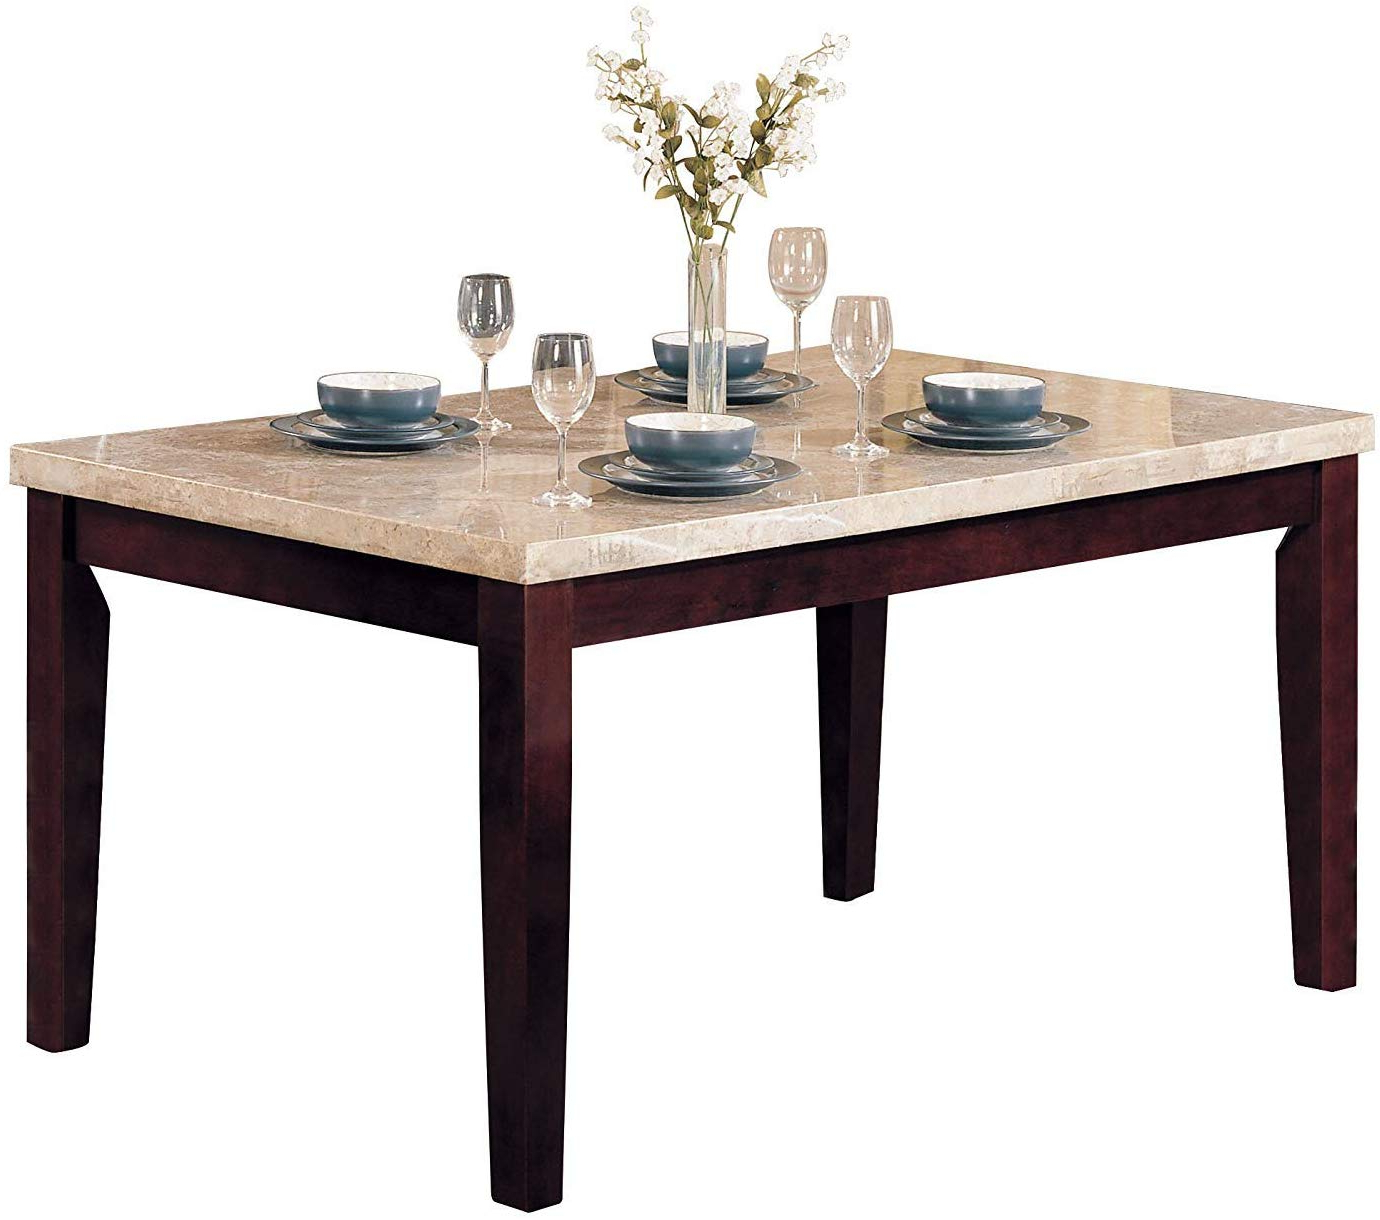 Featured Photo of Walnut And Antique White Finish Contemporary Country Dining Tables